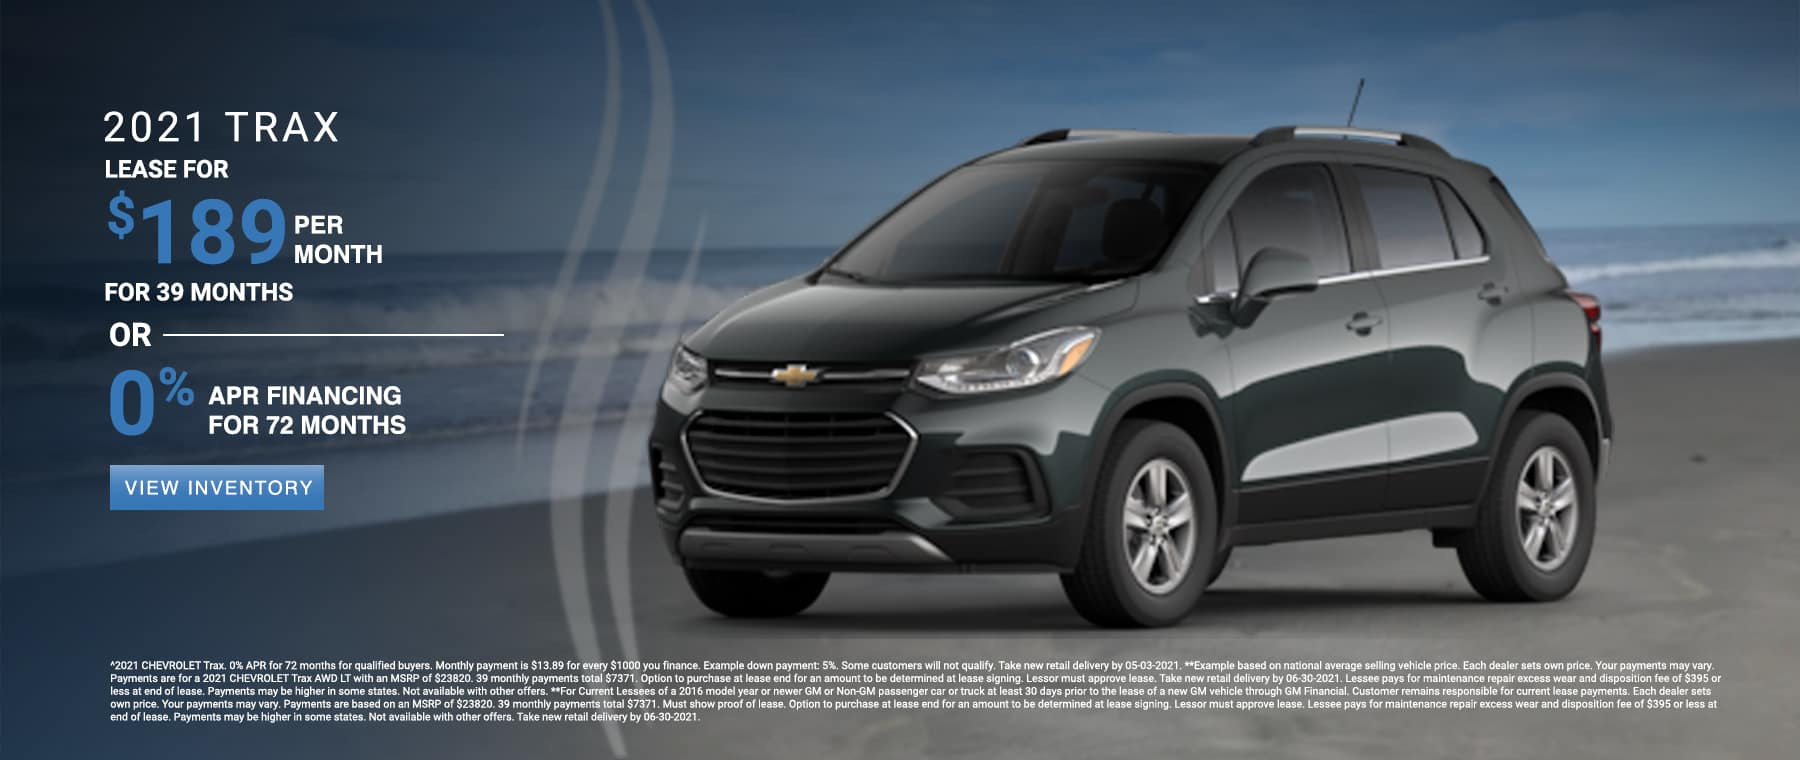 Lease a new 2021 Trax for $189/month. See dealer for details.